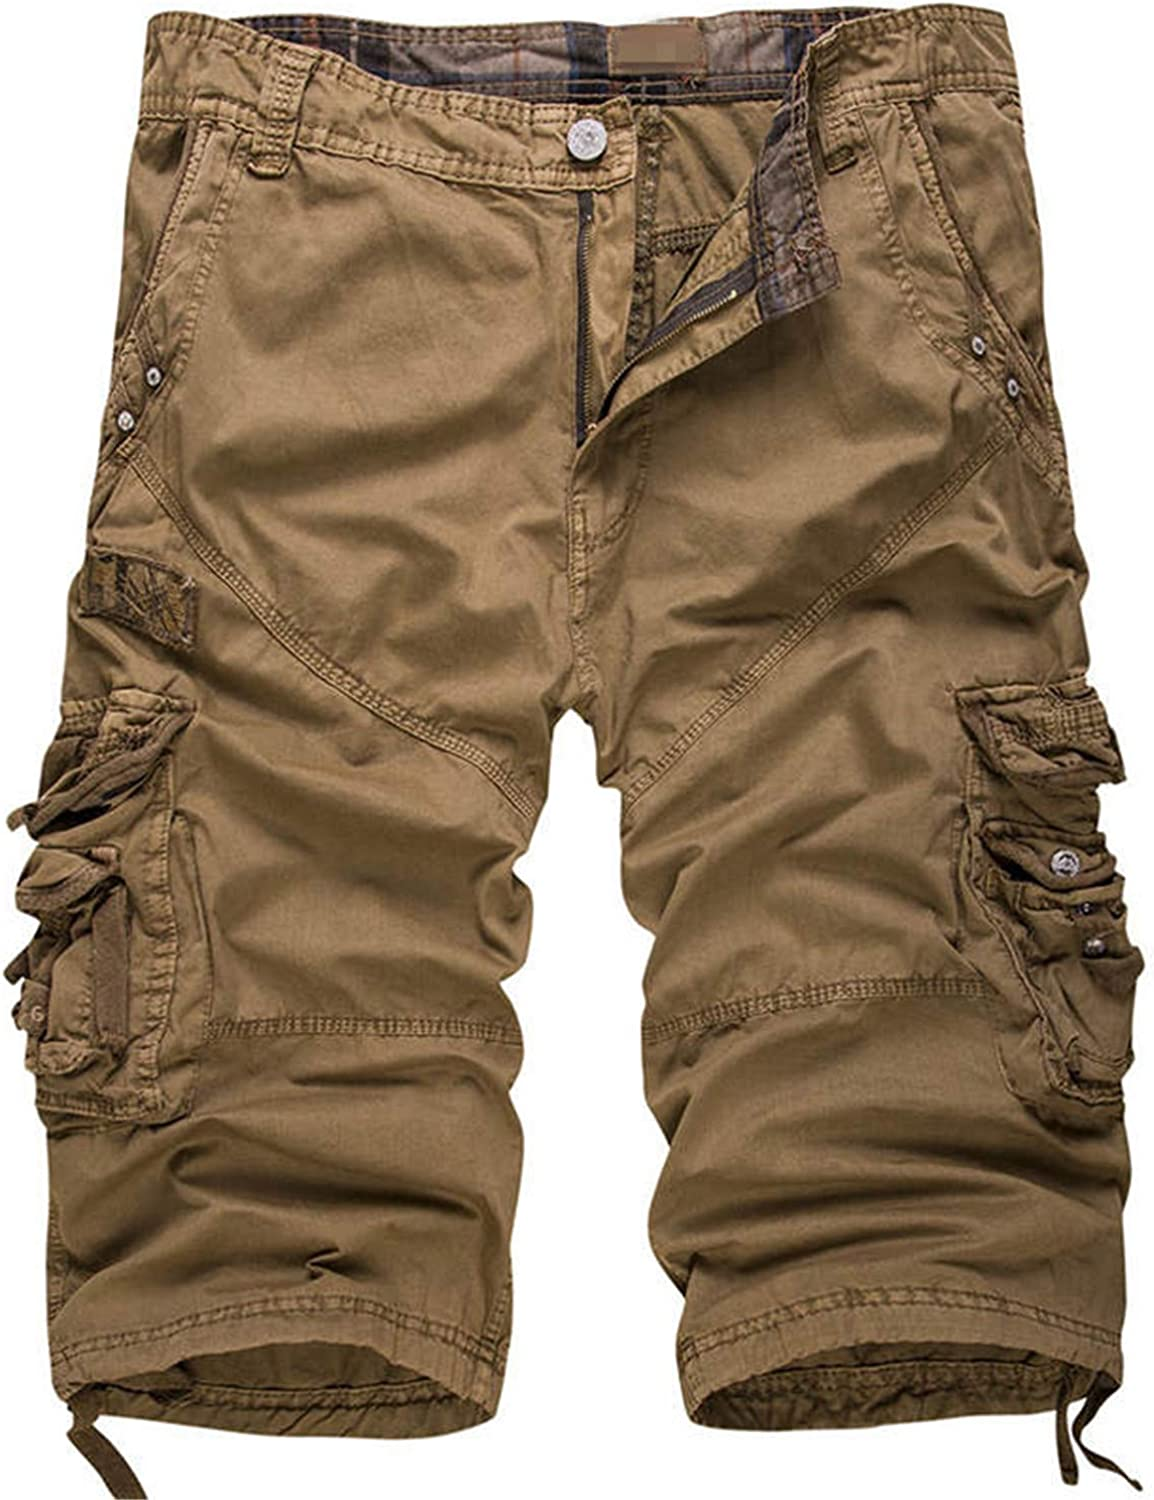 Adam Woolf New Male Board Shorts Summer Mens Camouflage Army Cargo Shorts Workout Shorts